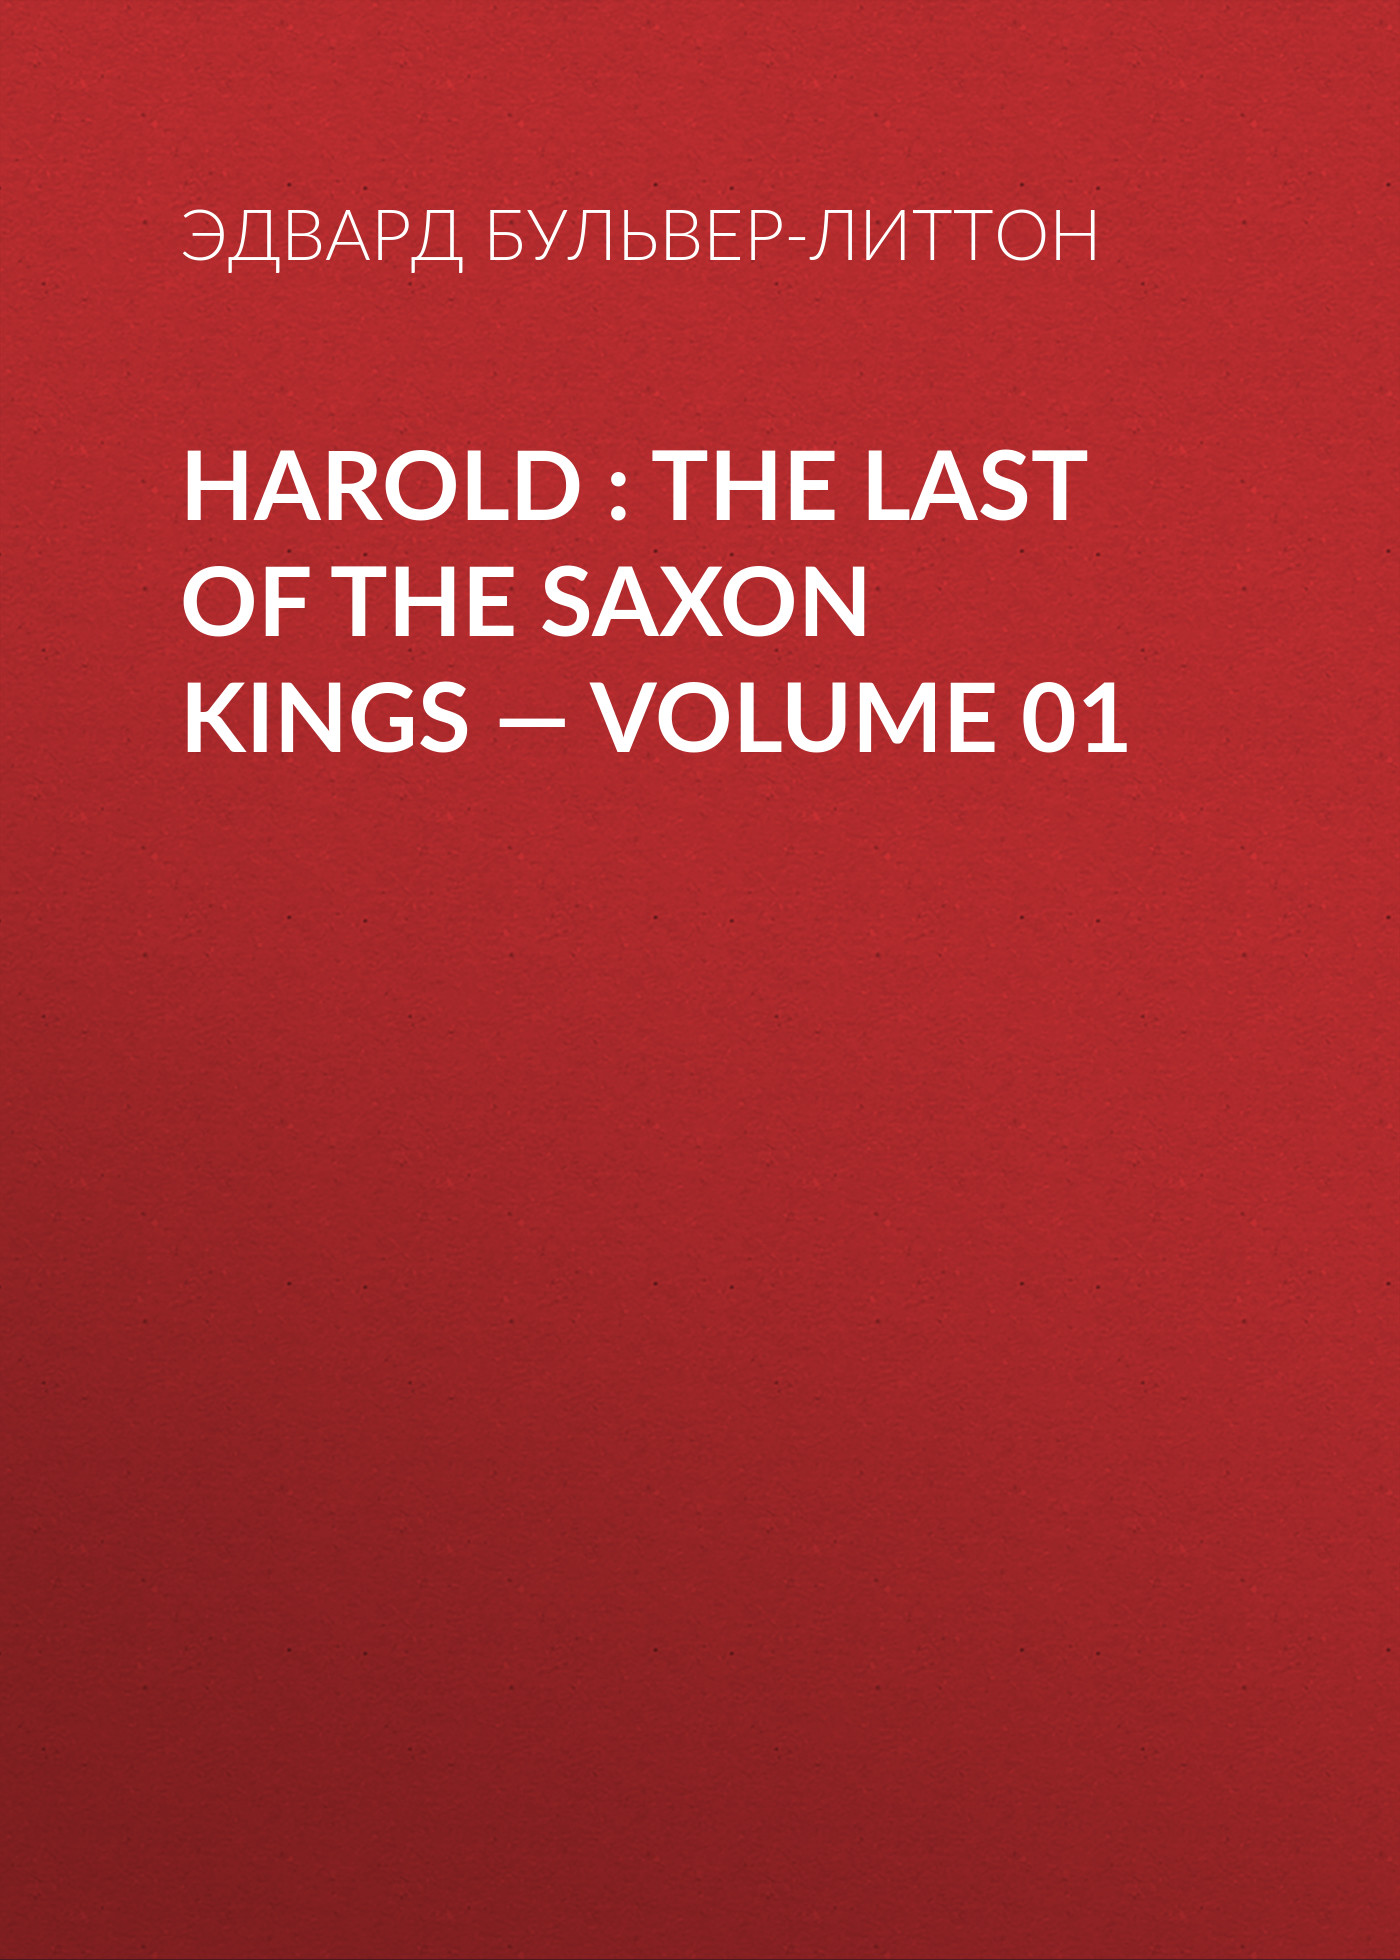 Эдвард Бульвер-Литтон Harold : the Last of the Saxon Kings — Volume 01 эдвард бульвер литтон harold the last of the saxon kings volume 10